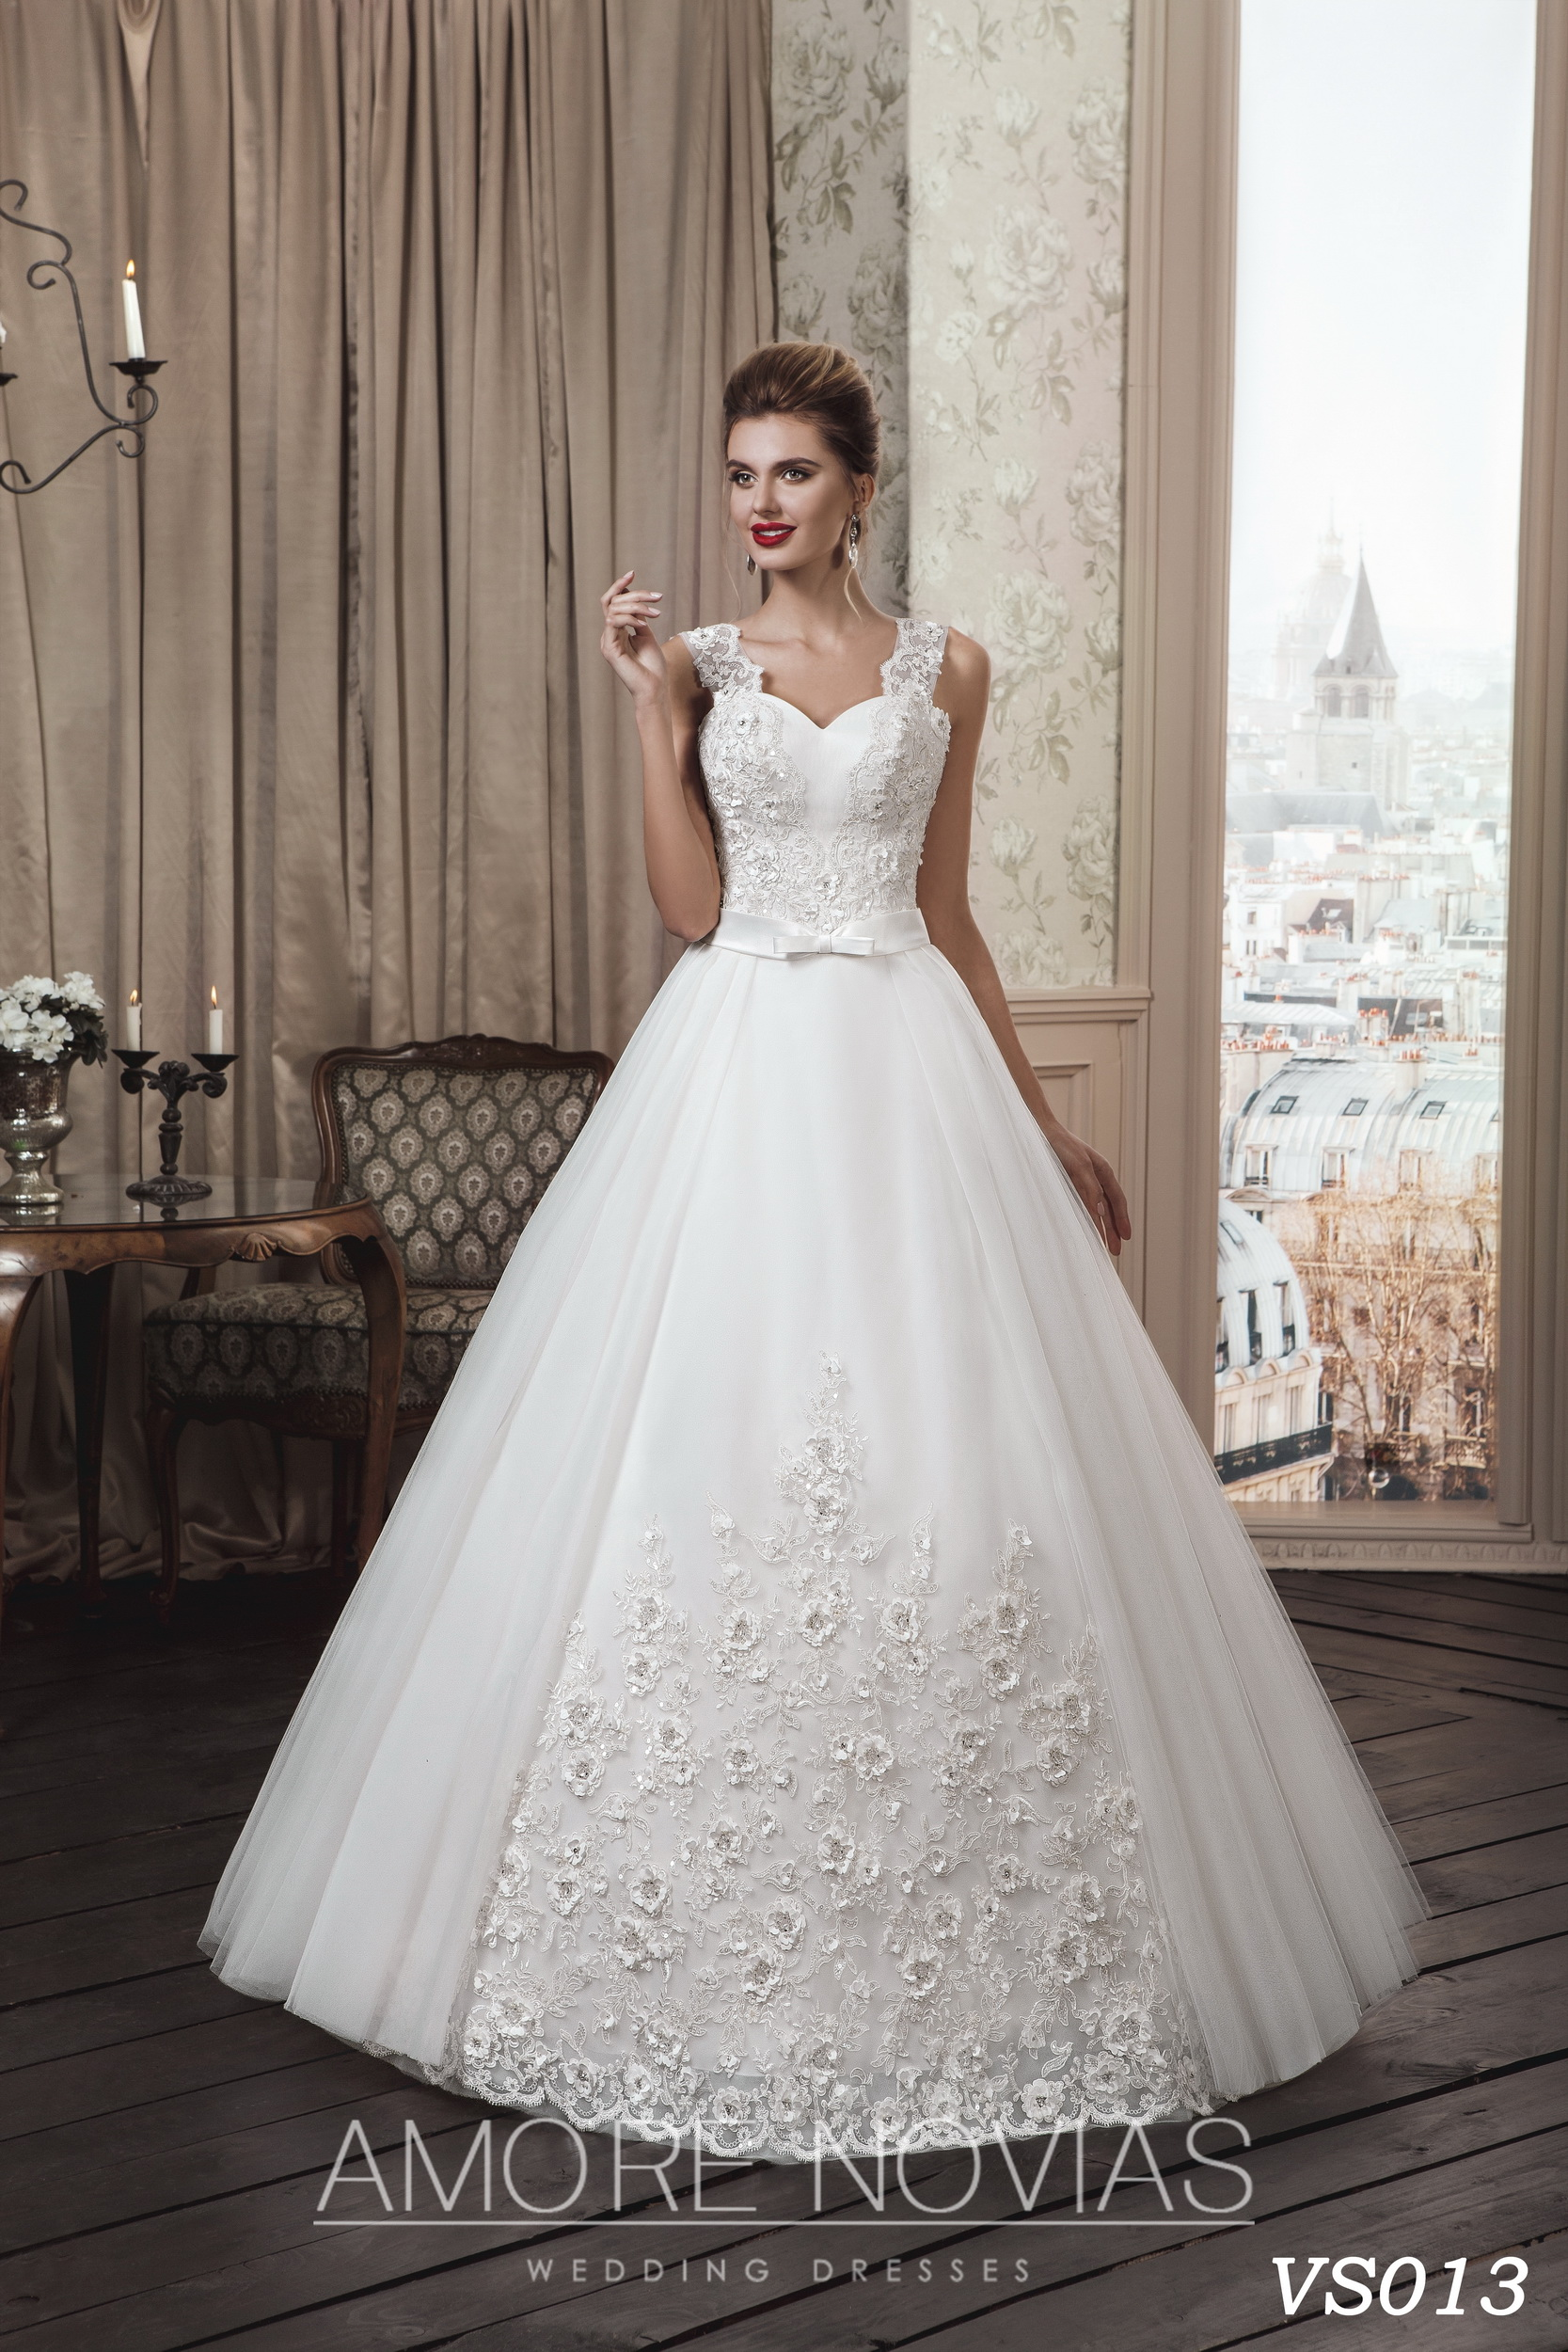 https://amore-novias.com/images/stories/virtuemart/product/vs013.jpg